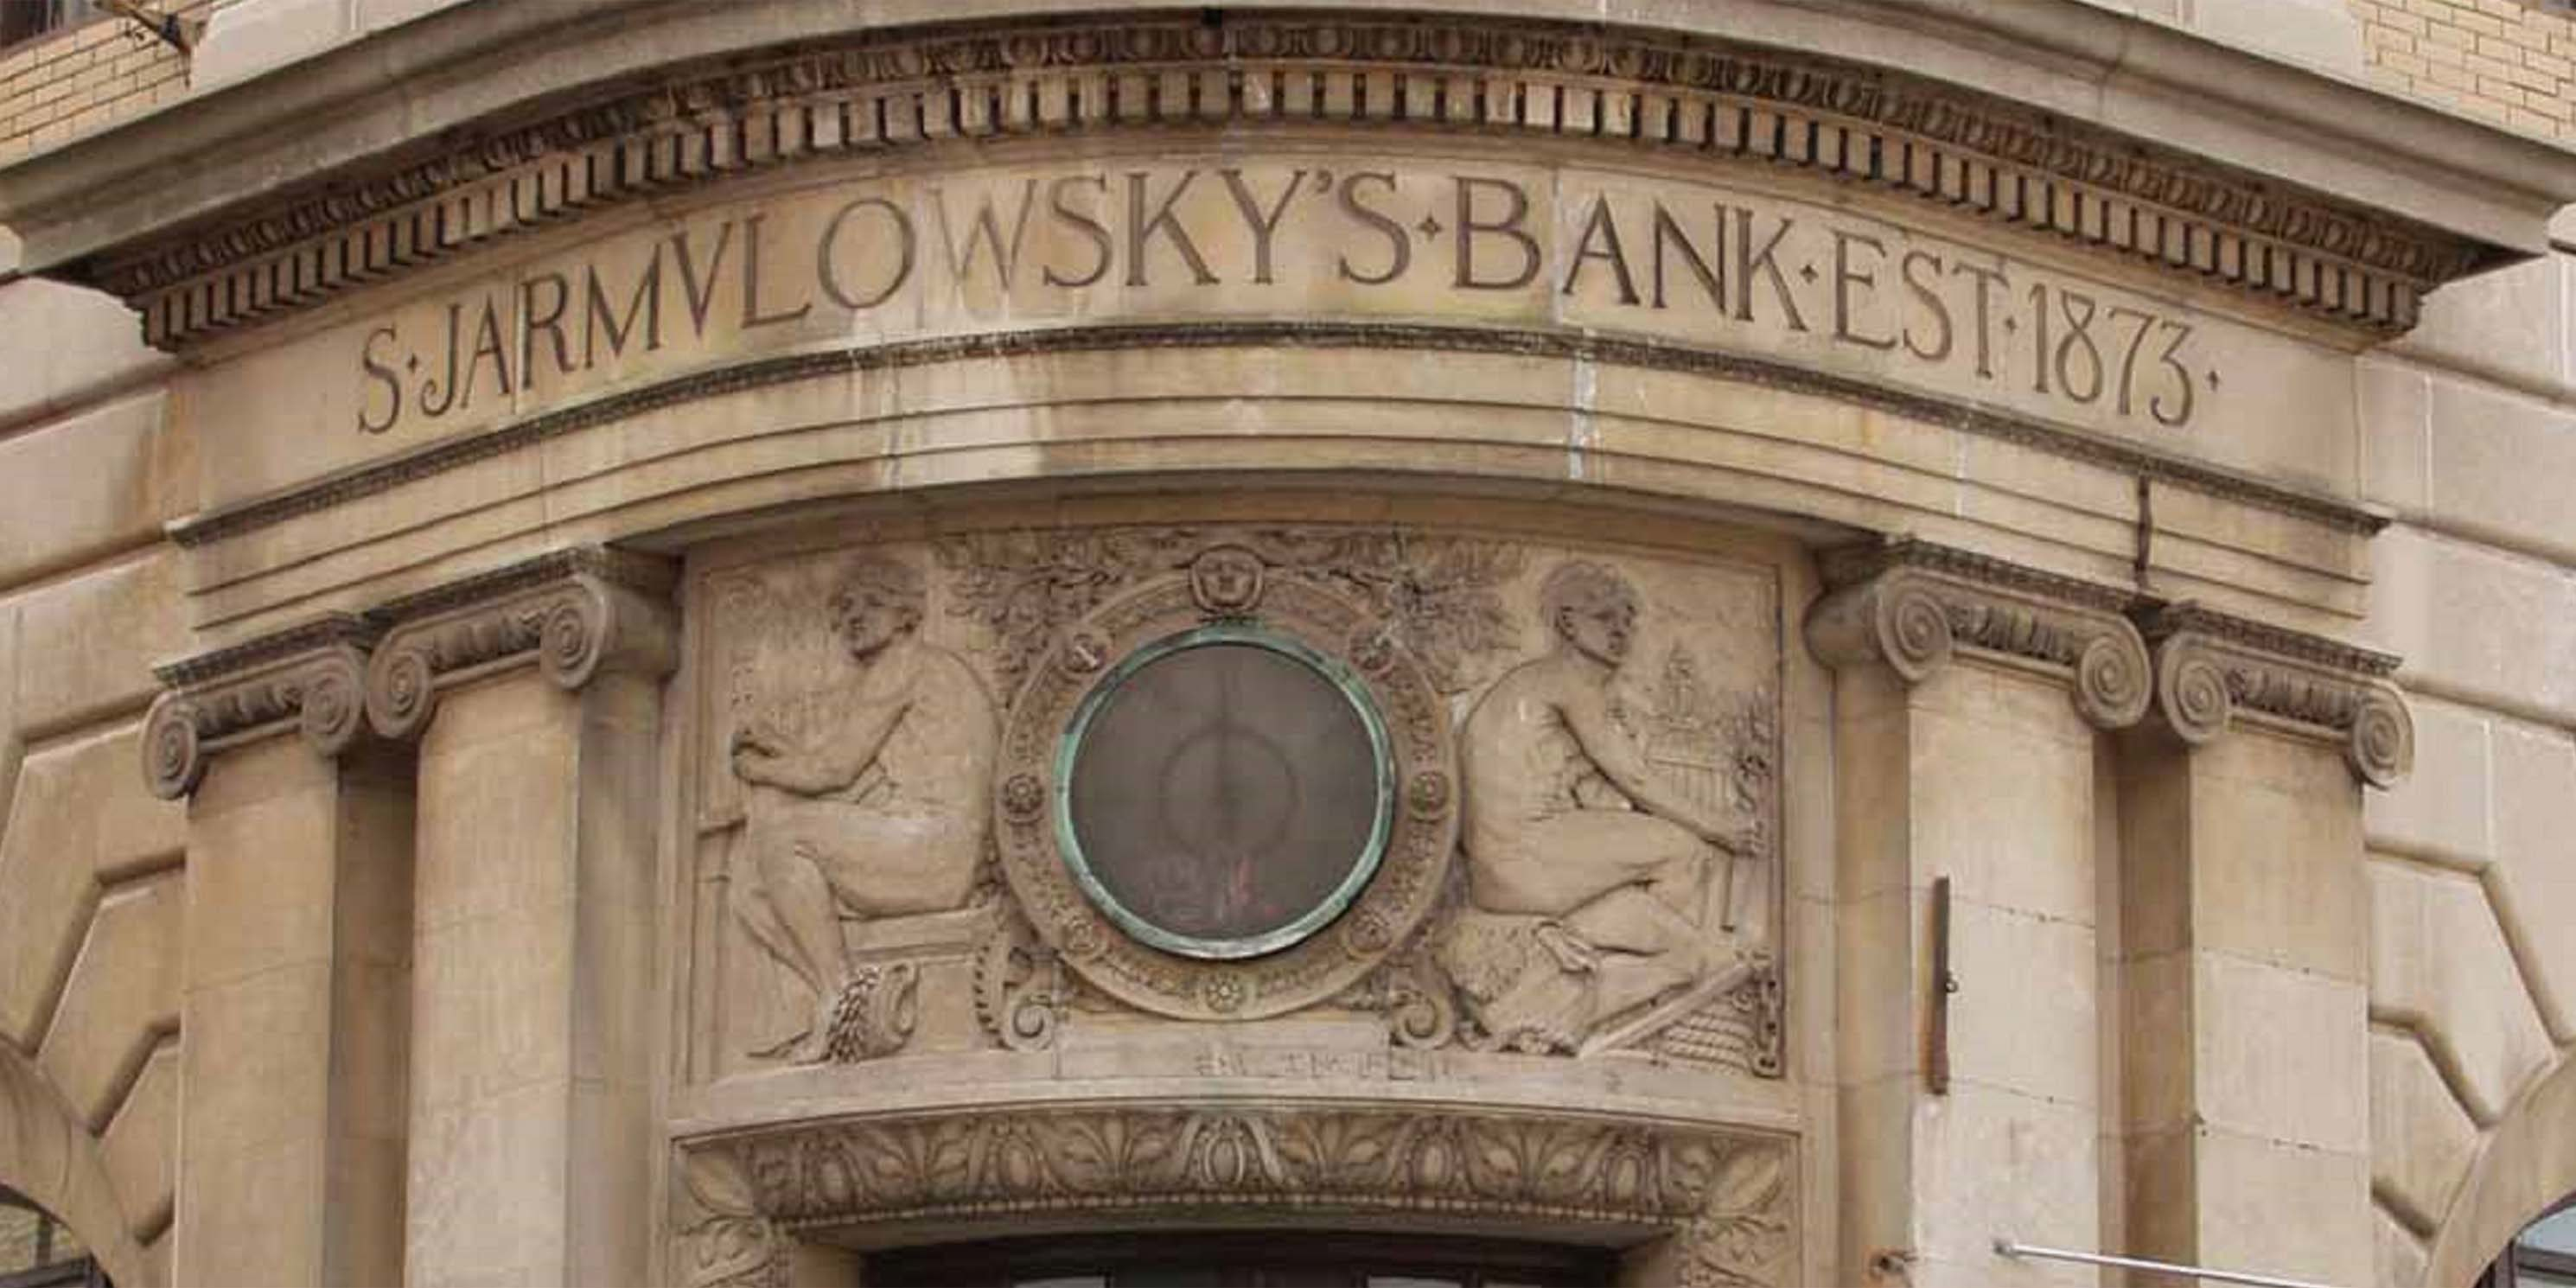 sign for Jarmulowsky Bank carved into stone facade of building